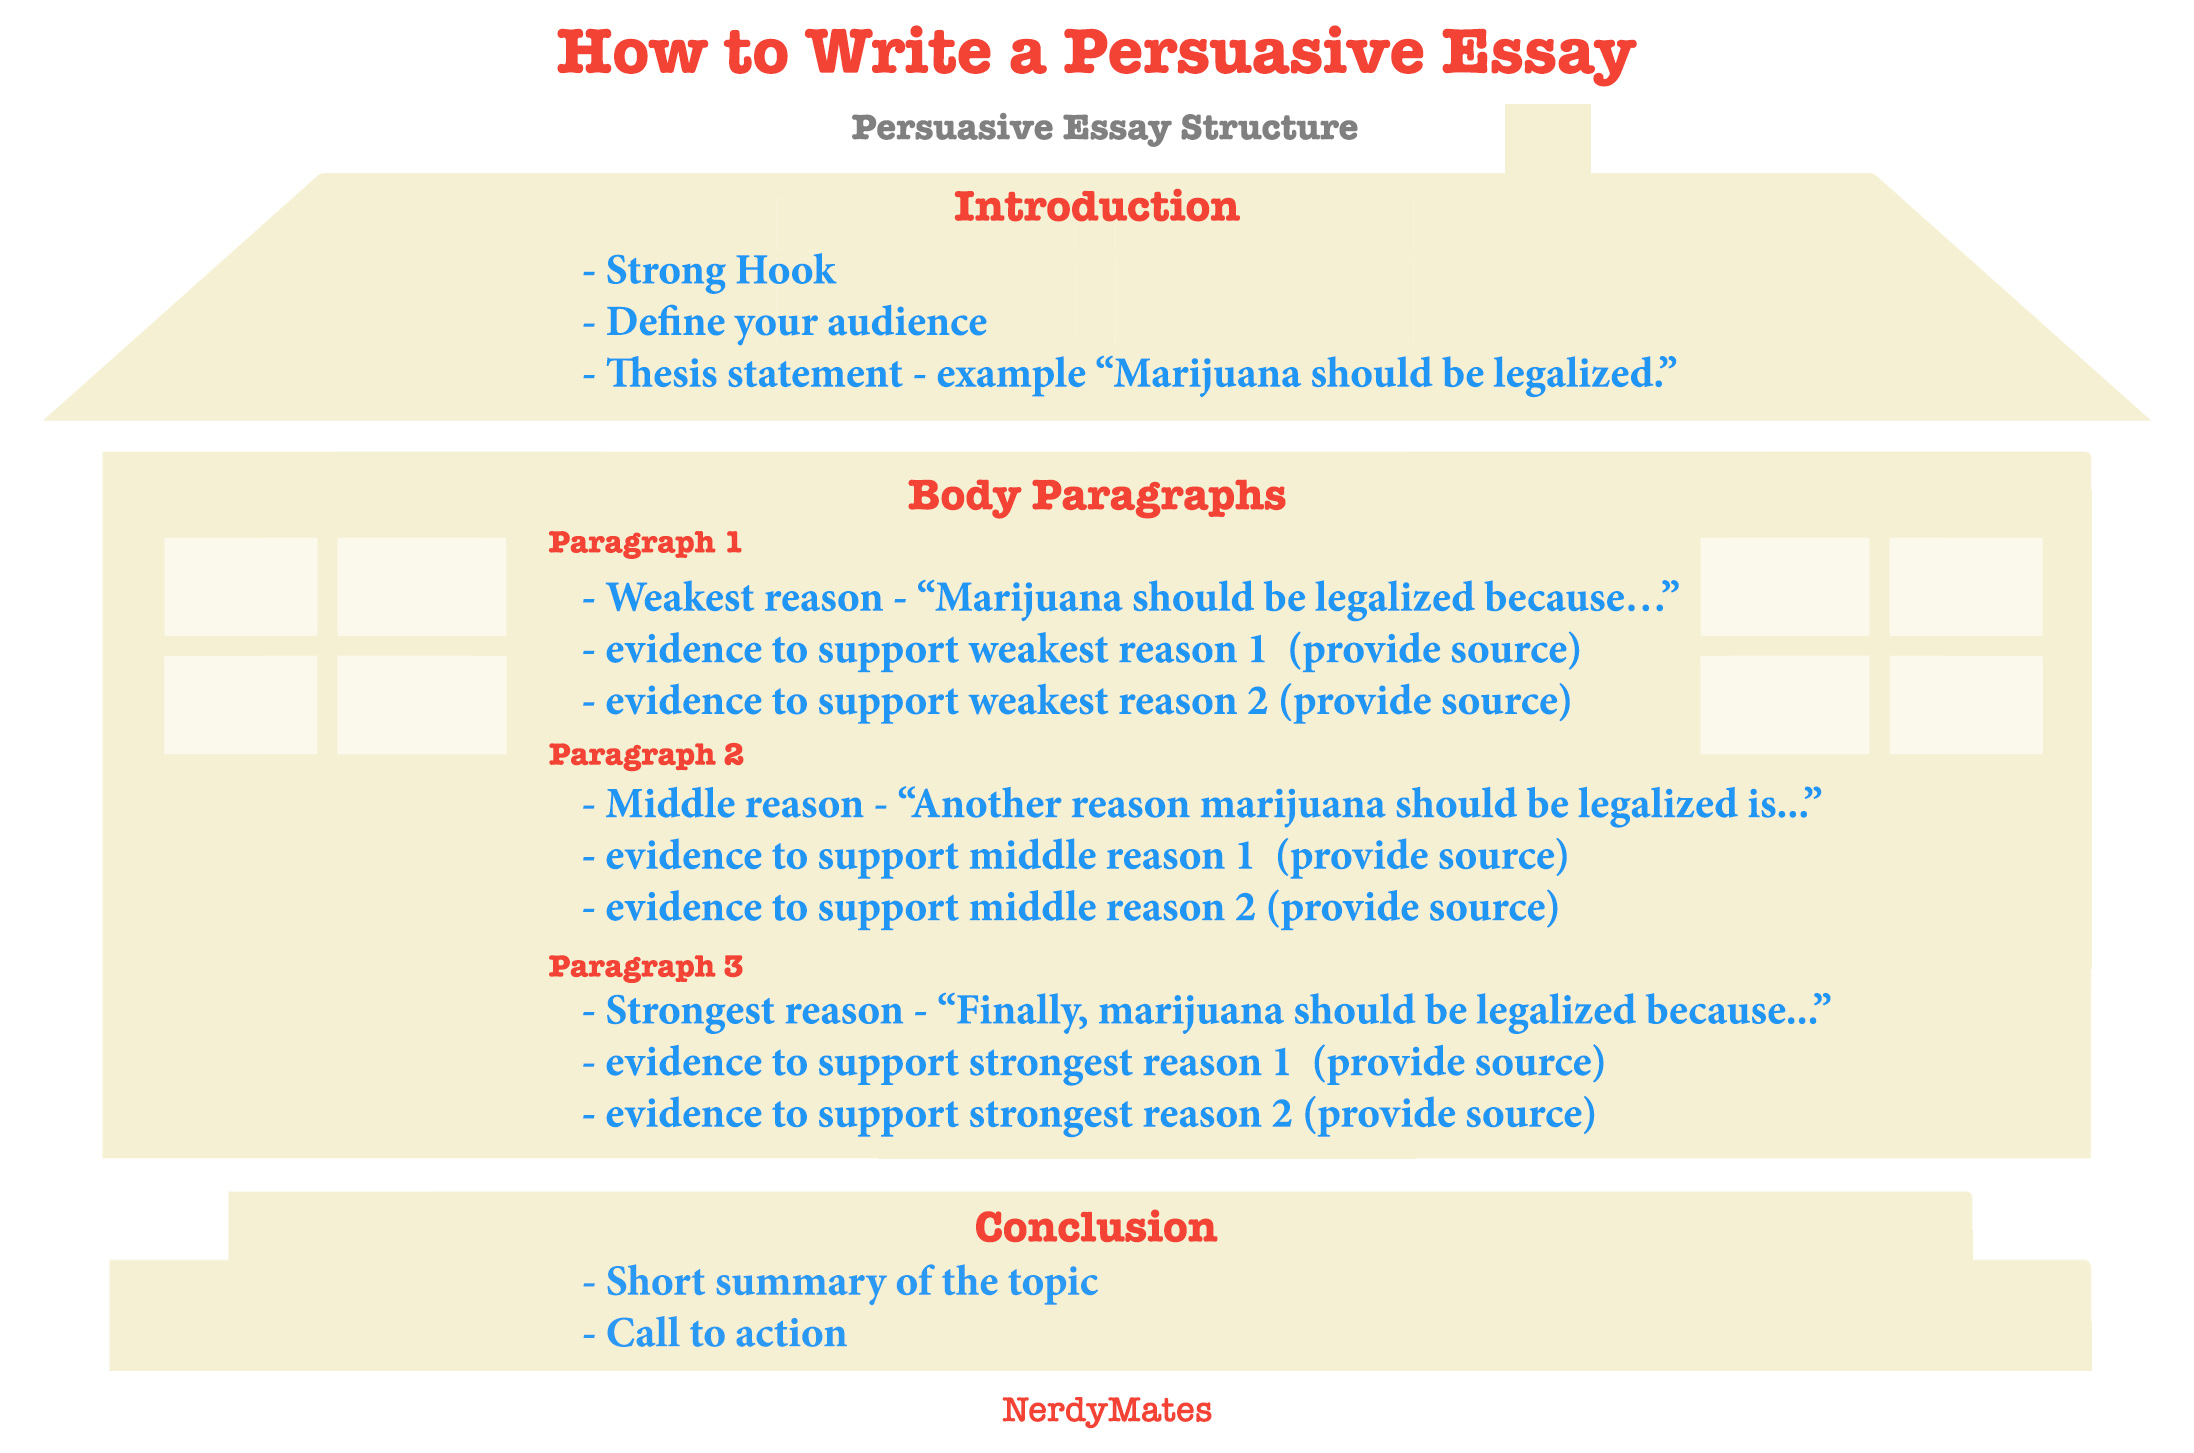 Introduction for argumentative essay examples